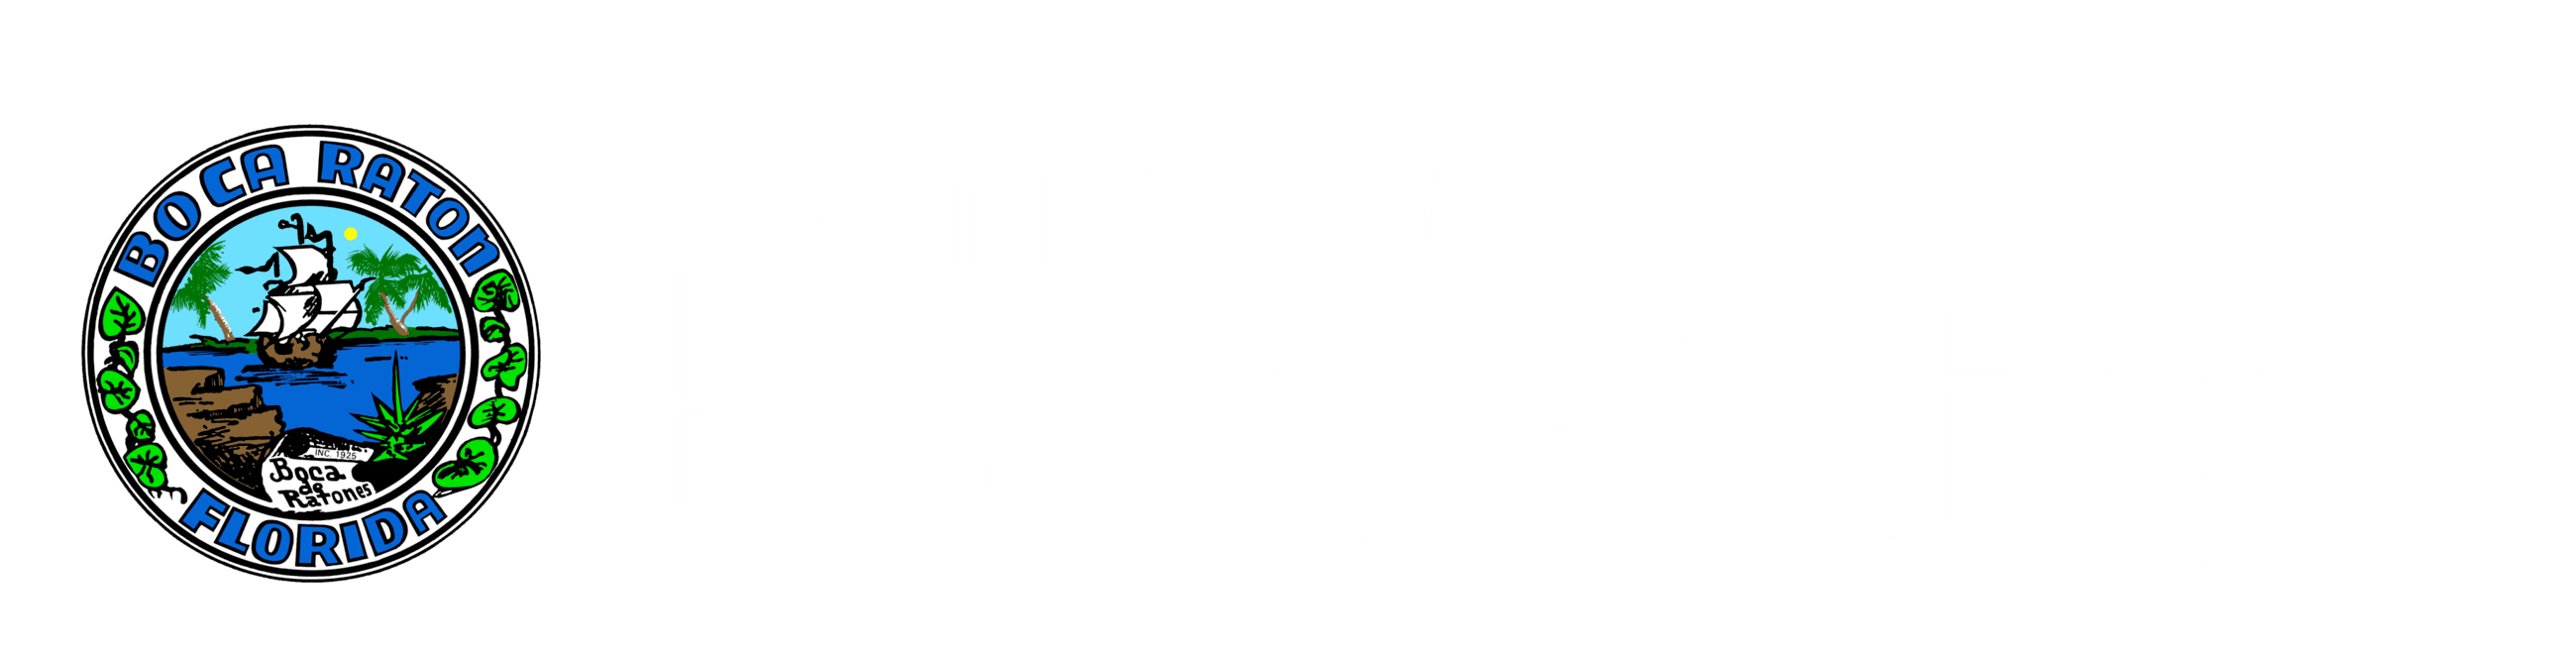 City of Boca Raton with Seal Left - WHITE RGB